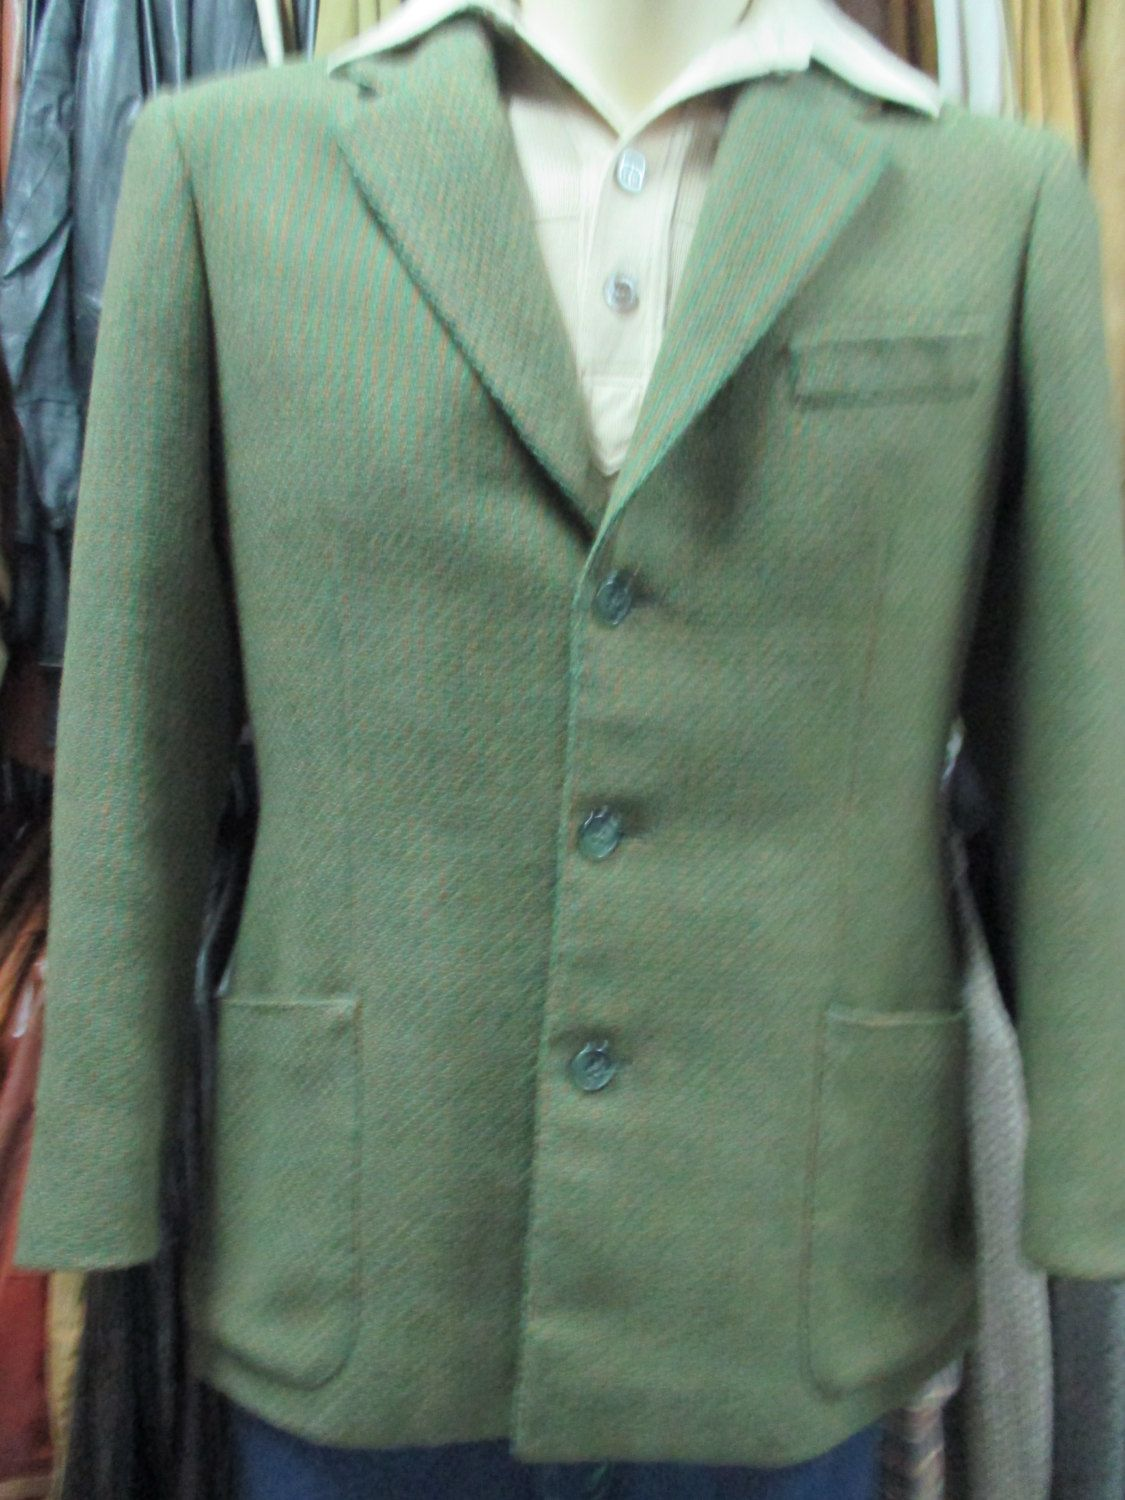 best loved 11419 9a57c Giacca verde uomo anni 60/70.Tg.M/Fantastic 60s olive green ...